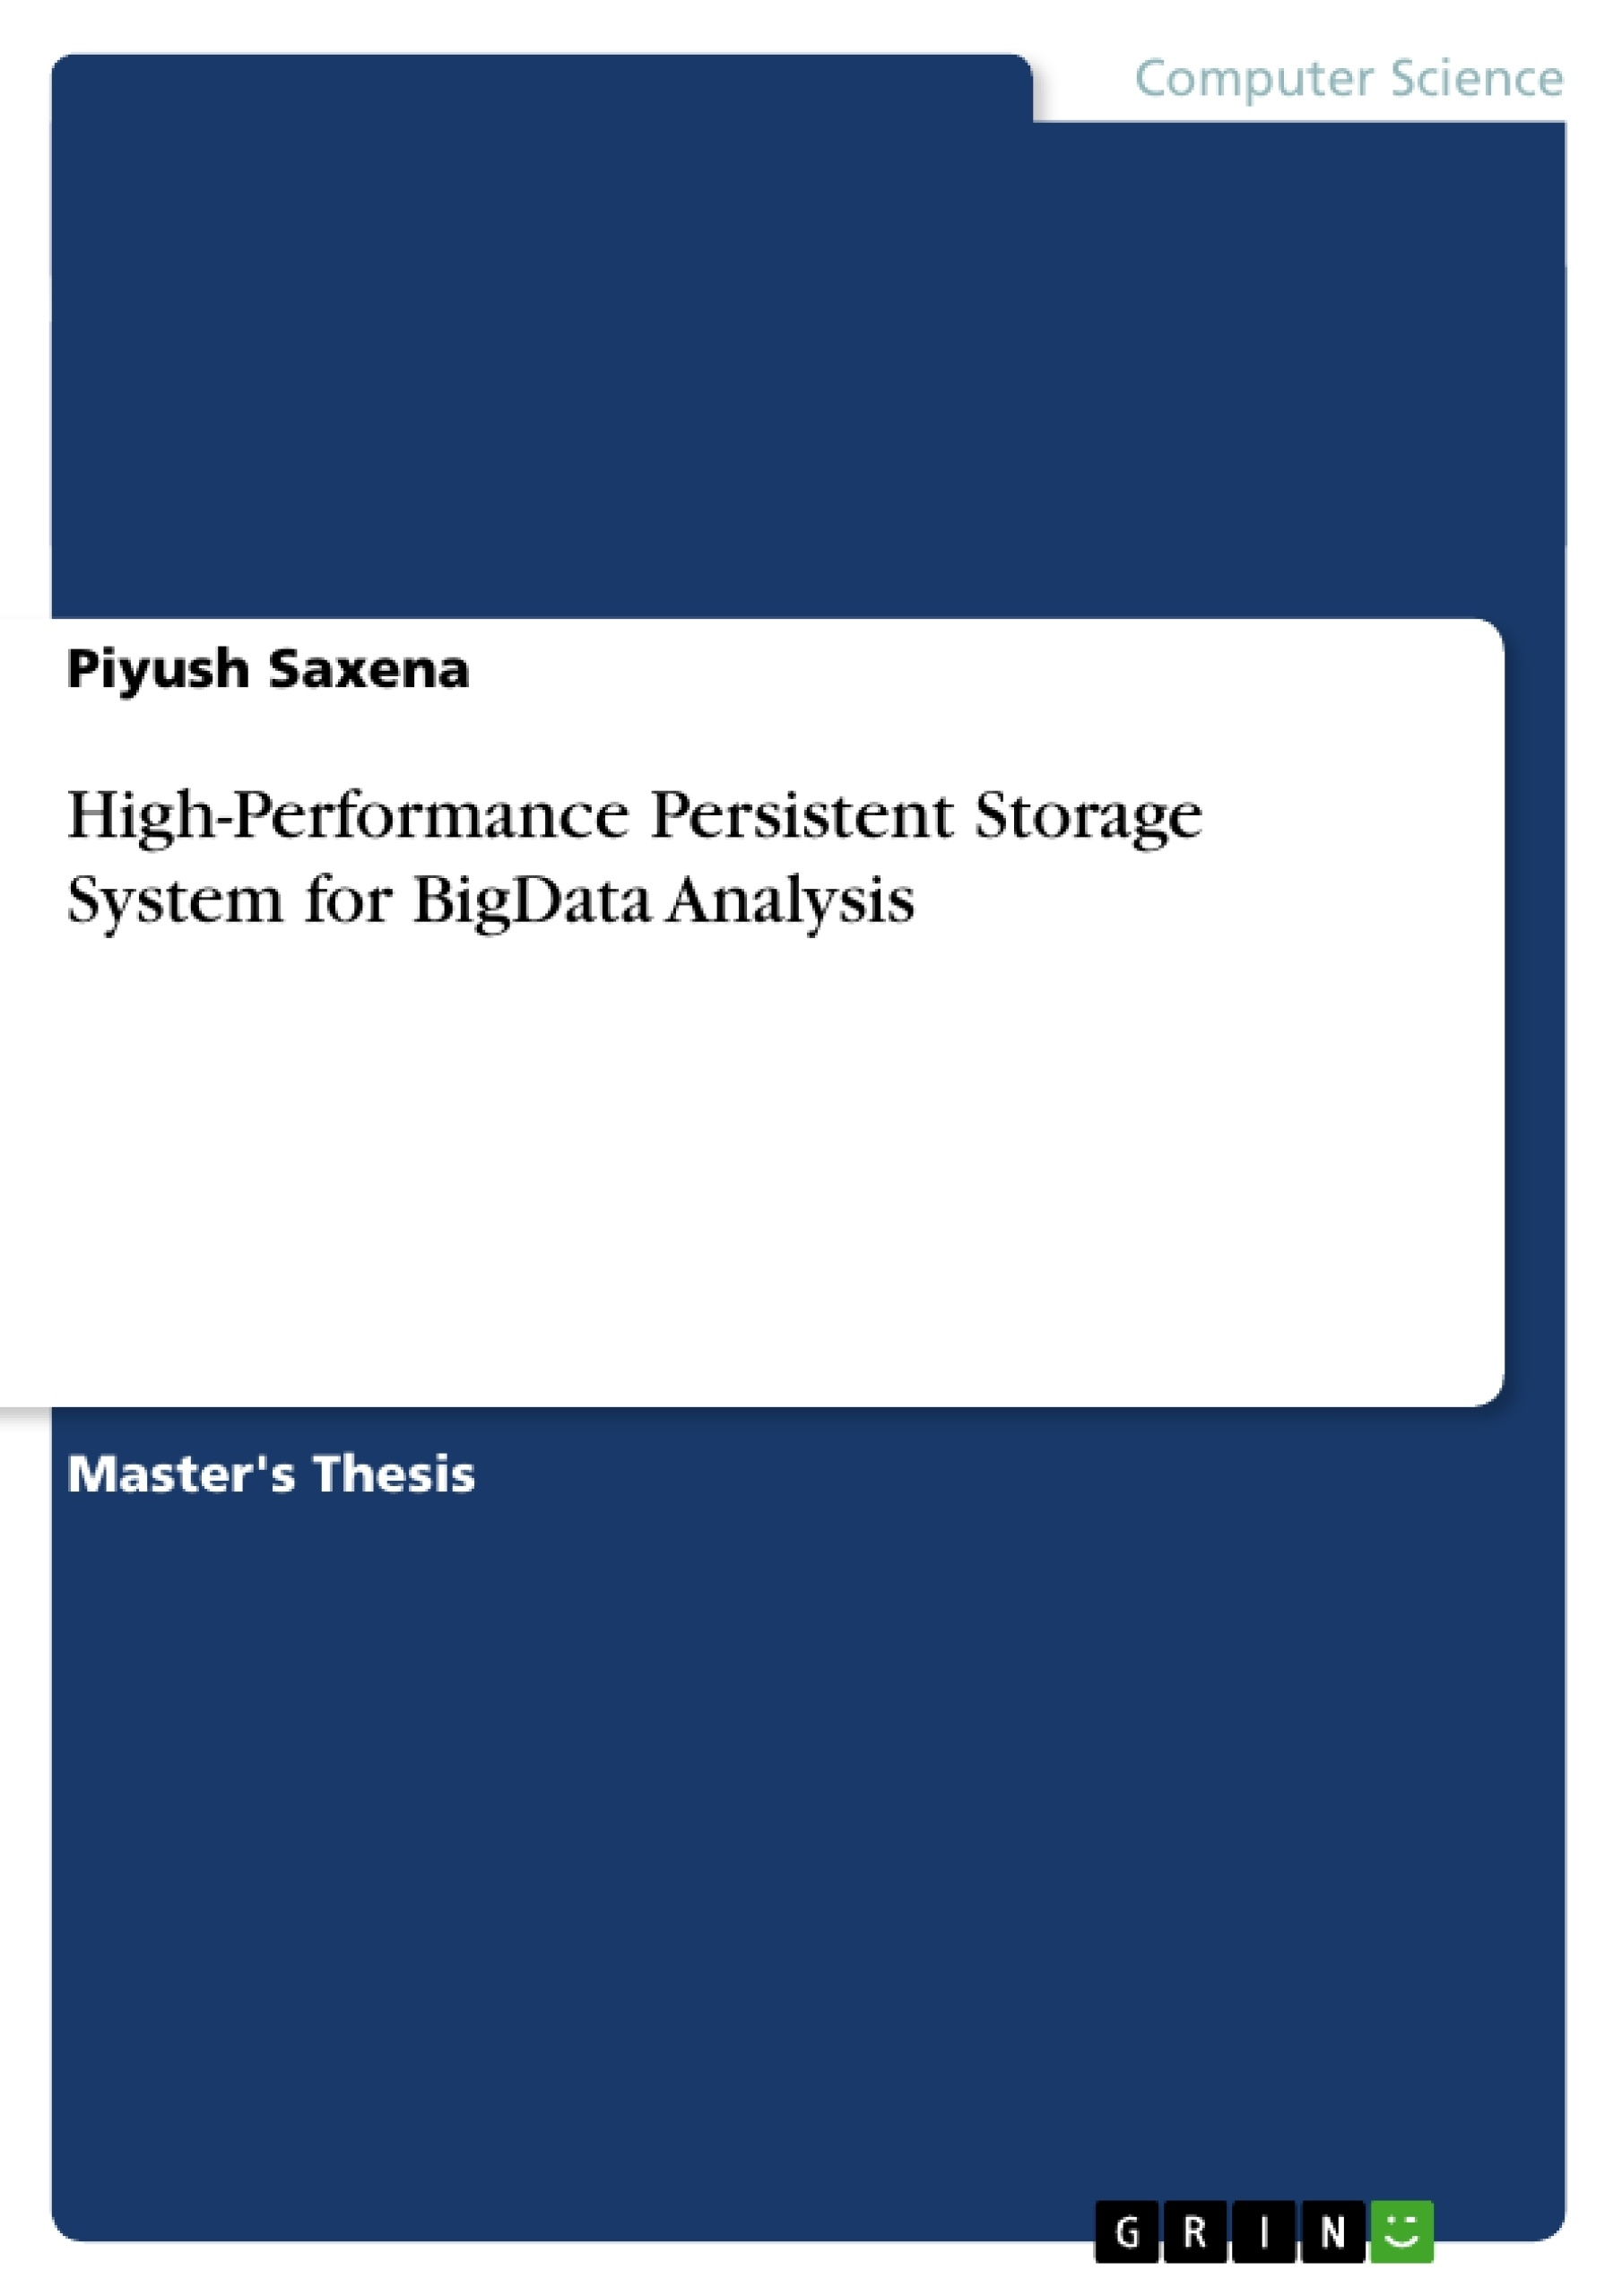 Title: High-Performance Persistent Storage System for BigData Analysis